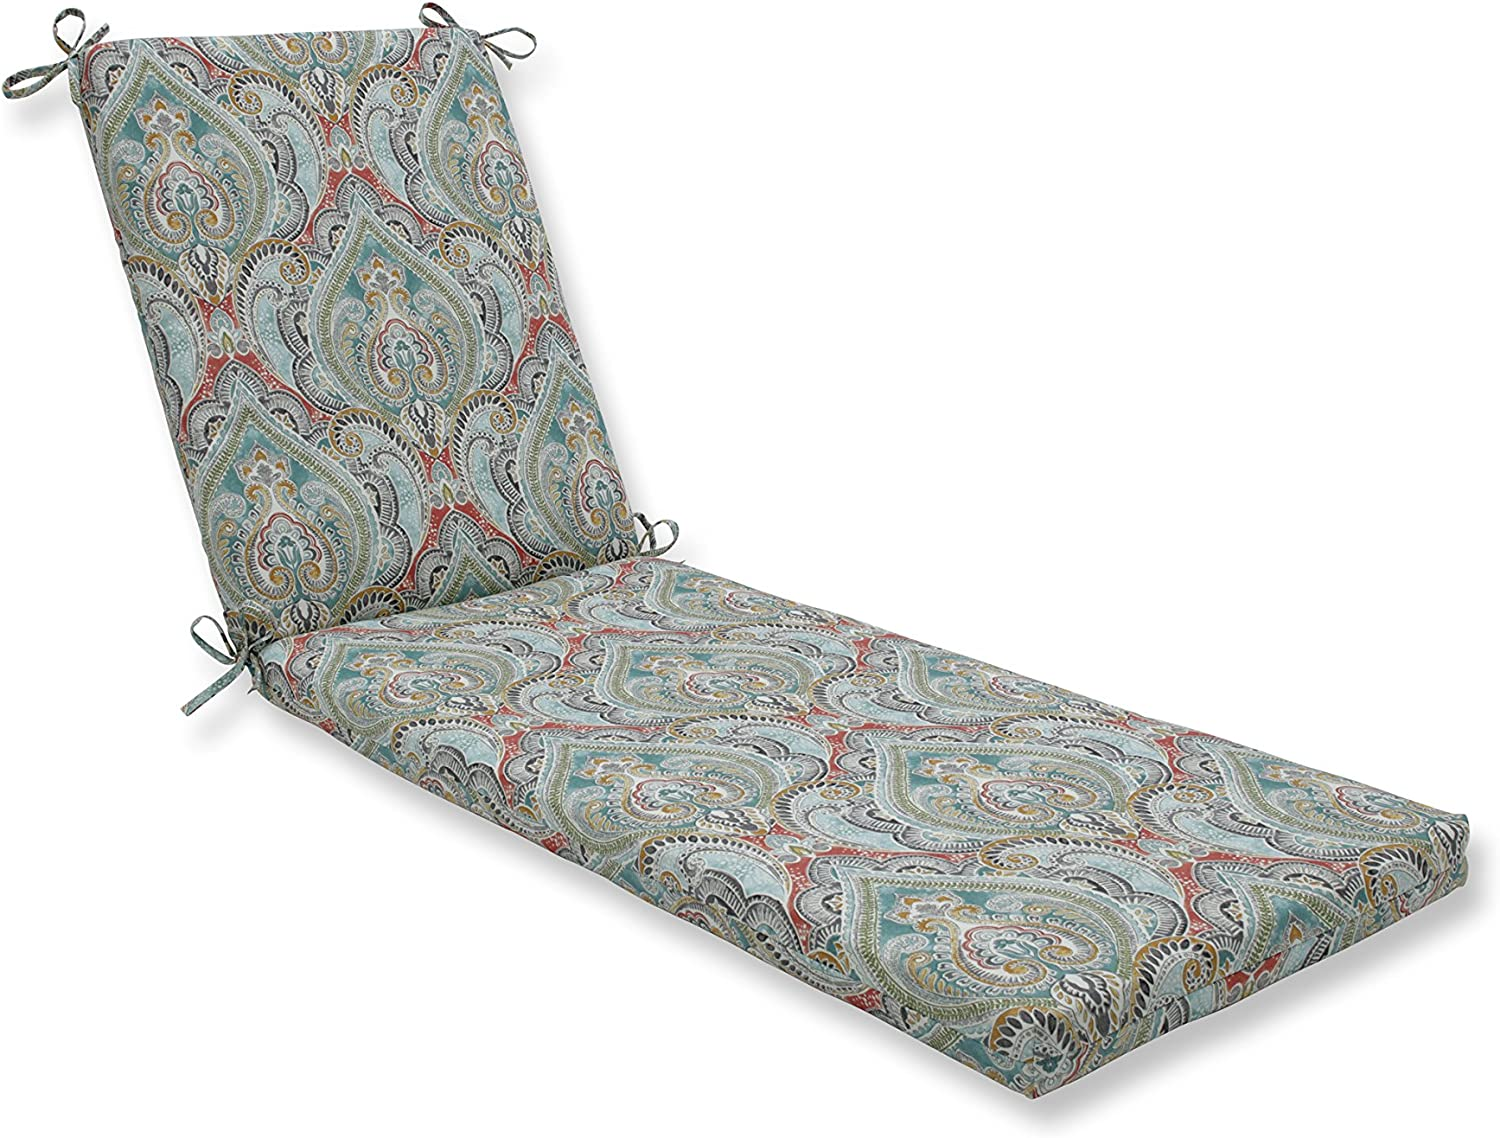 Sale SALE% OFF Pillow Perfect Outdoor Indoor Pretty Witty Dedication Chaise Reef Lounge